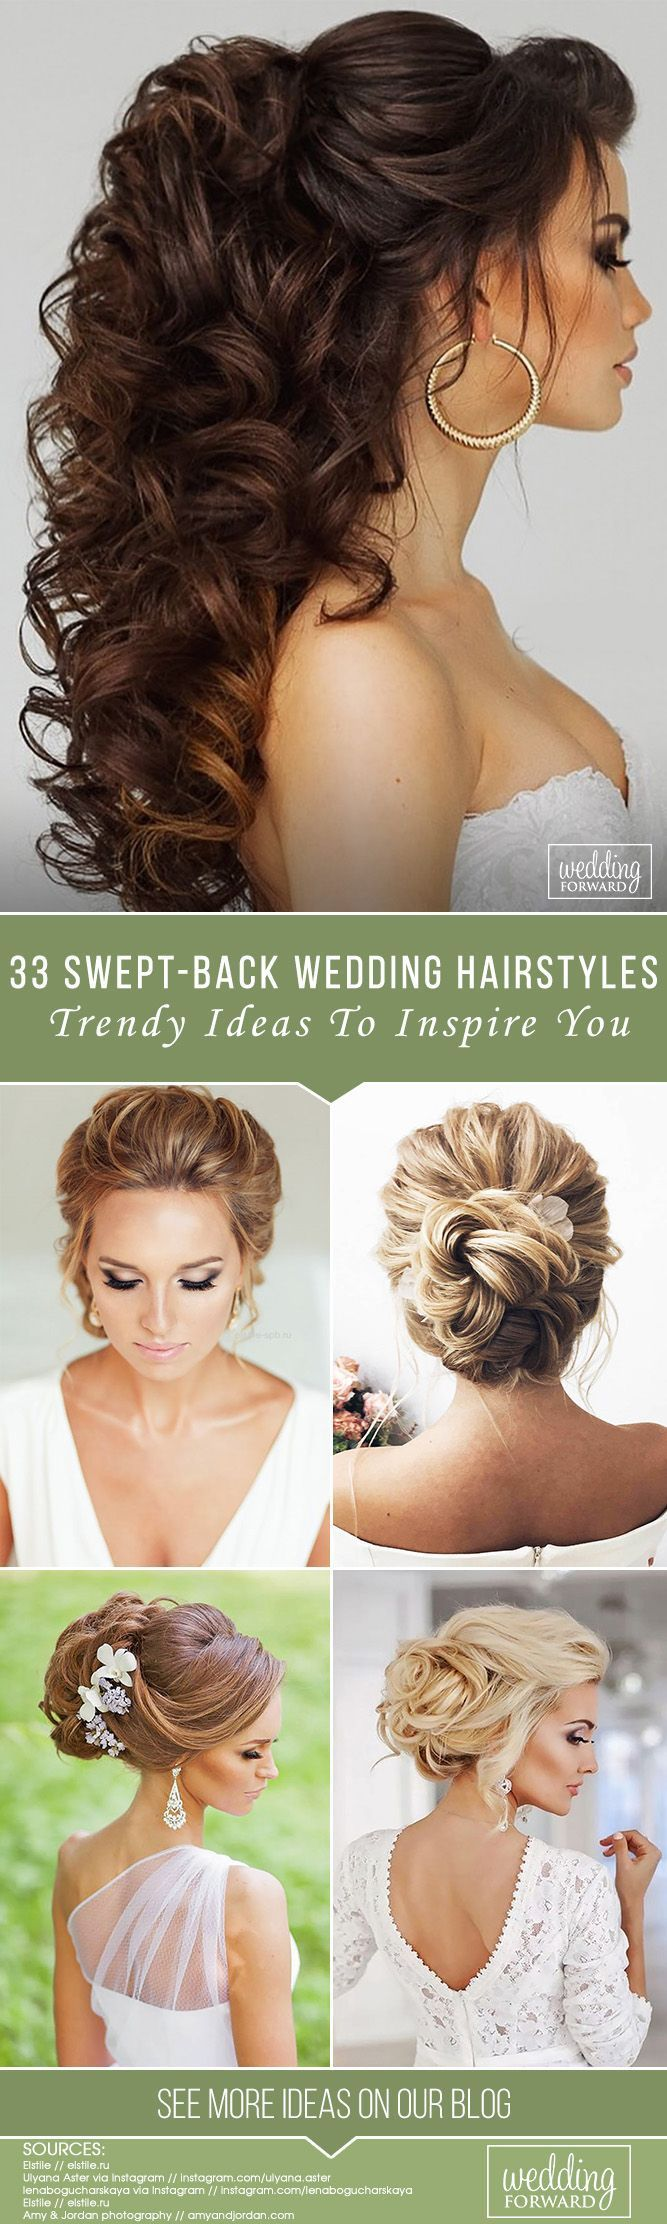 wedding hair styles 36 trendy swept back wedding hairstyles frisuren 3024